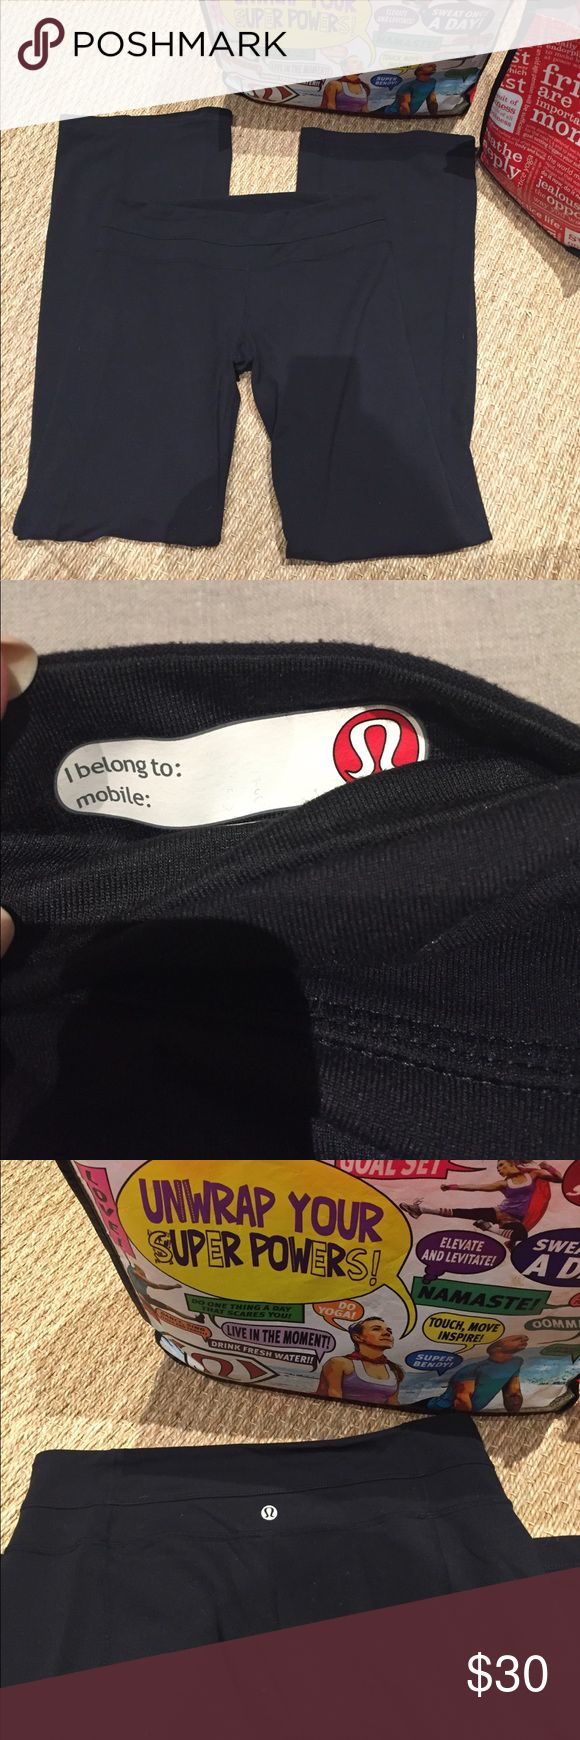 """Lululemon Pant solid Black size 10 41""""length Lululemon Pant solid Black size 10 41""""length great shopping around town and workout pant these are great all day long💗 love LULULEMON gently worn Great Condition! lululemon athletica Pants Boot Cut & Flare"""